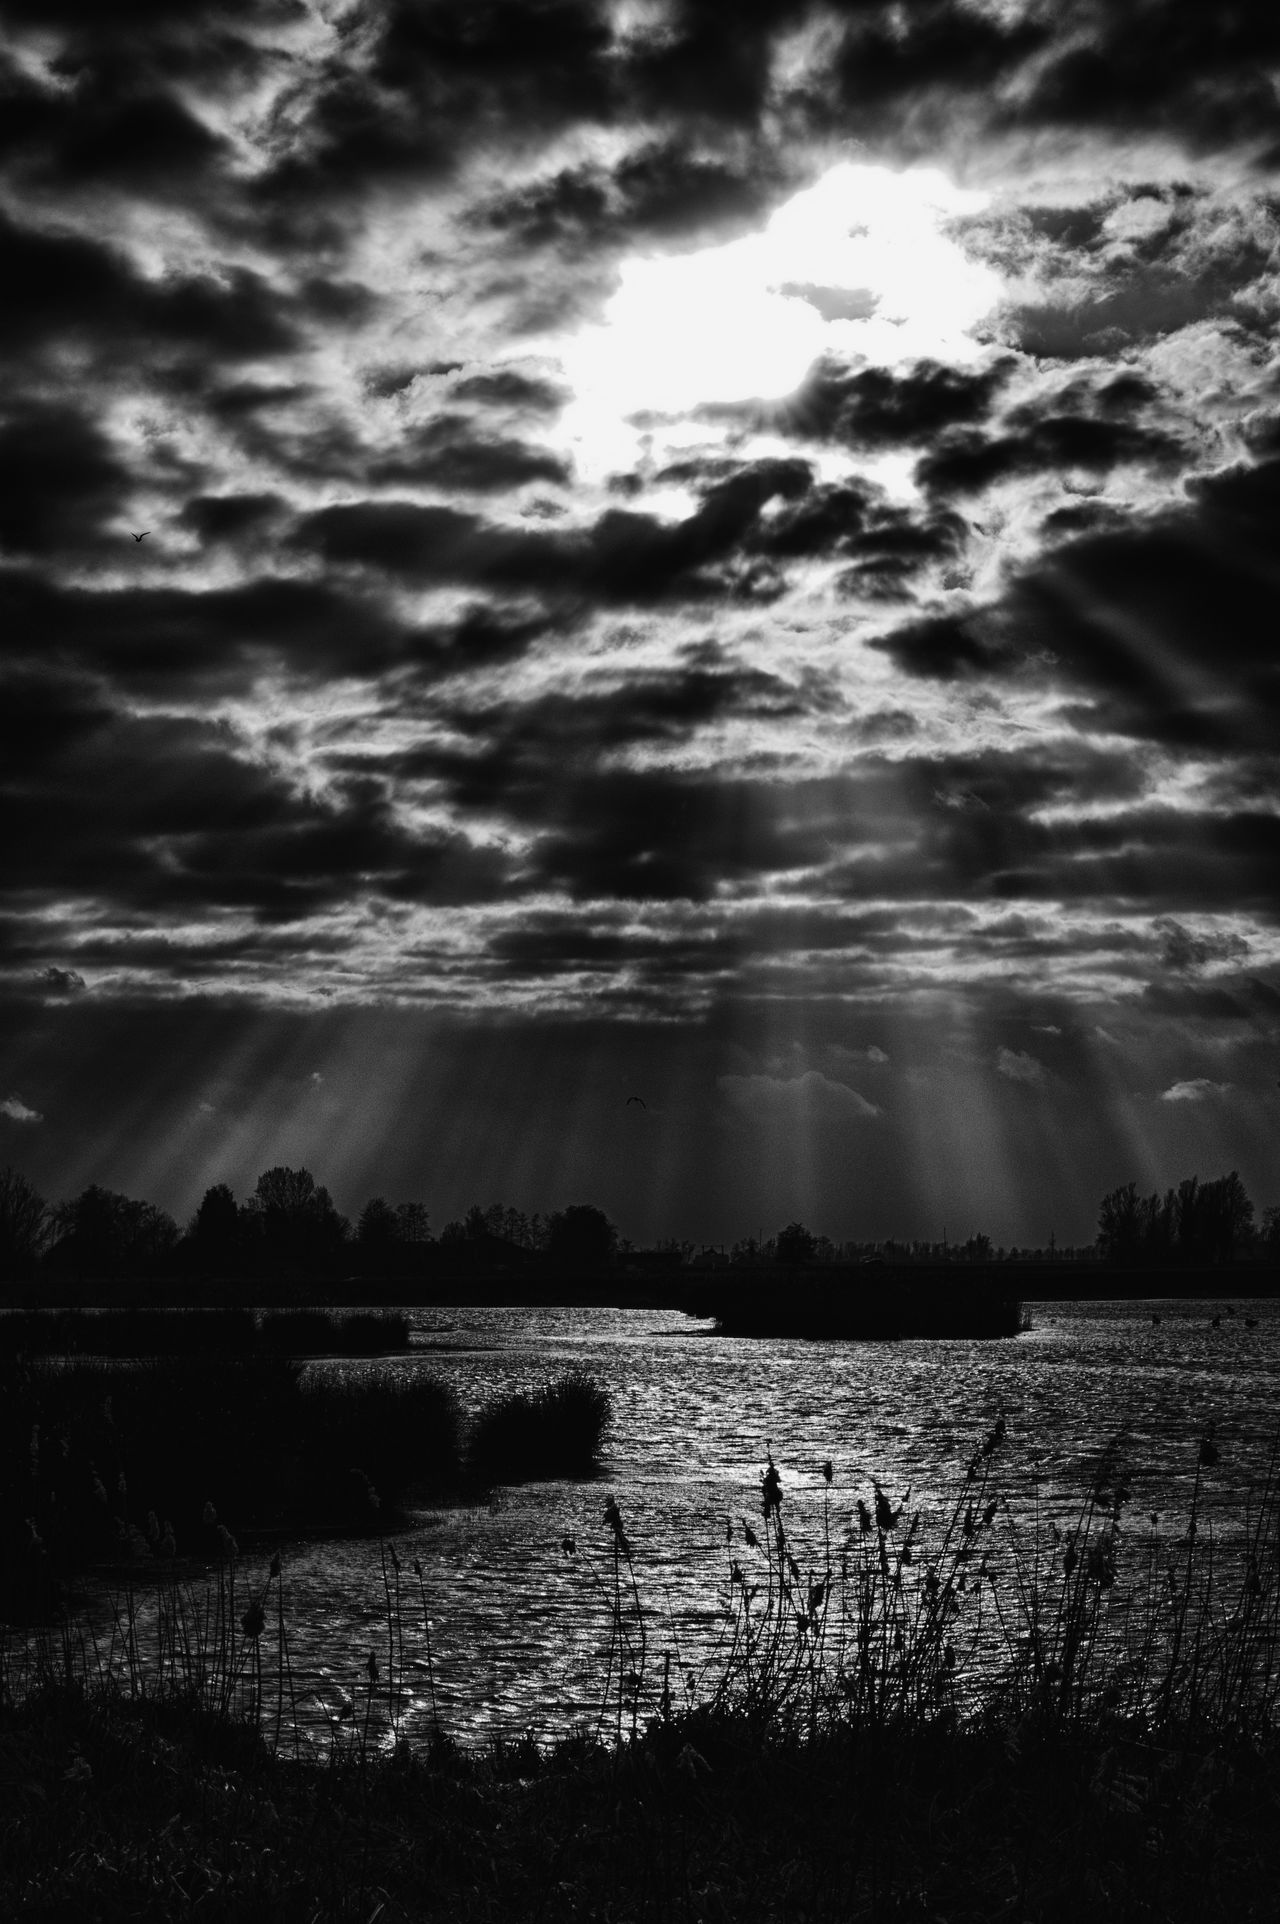 Heavon or hell Agriculture B&w Beauty In Nature Blackandwhite Cloud - Sky Cloudy Day Heaven Hell Landscape Monochrome Nature Nature No People Outdoors Rural Scene Scenics Silhouette Sky Storm Cloud Sun Sunrays Water